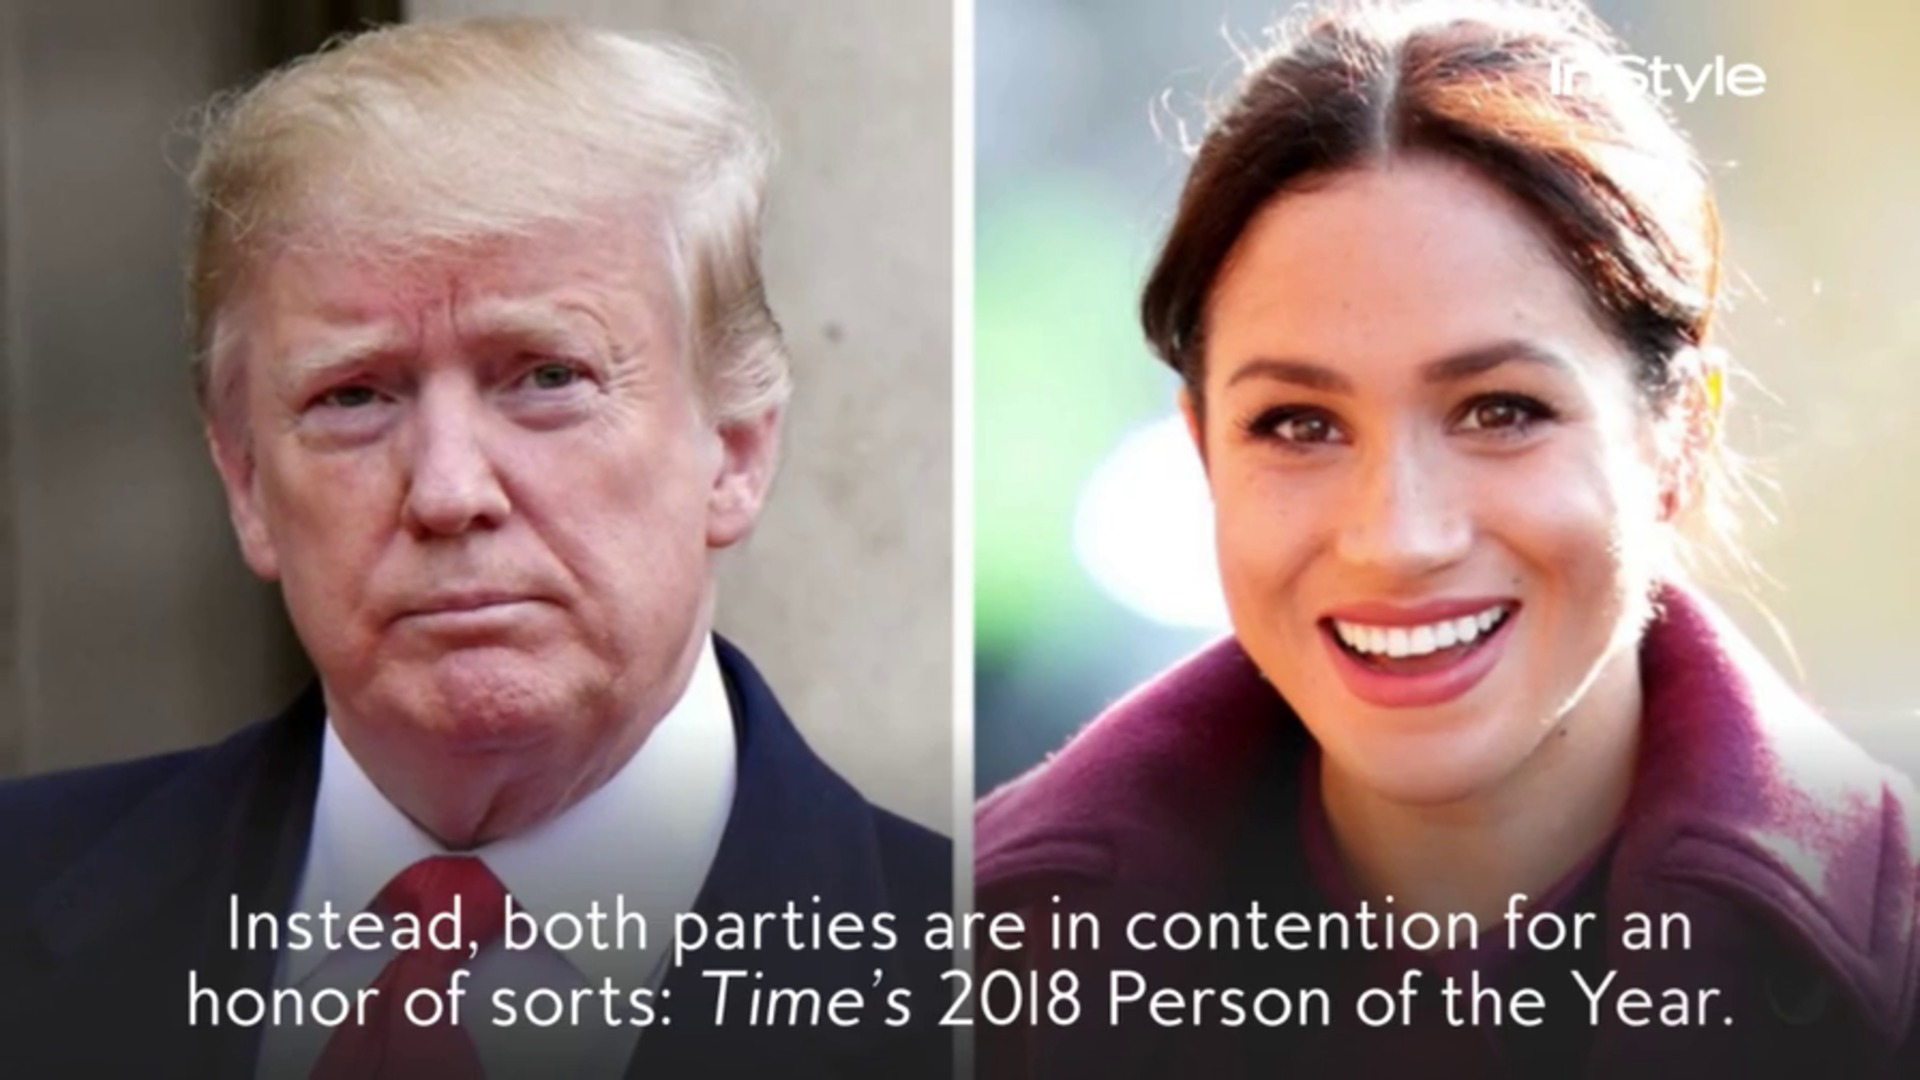 Meghan Markle and Donald Trump are facing off for the first time